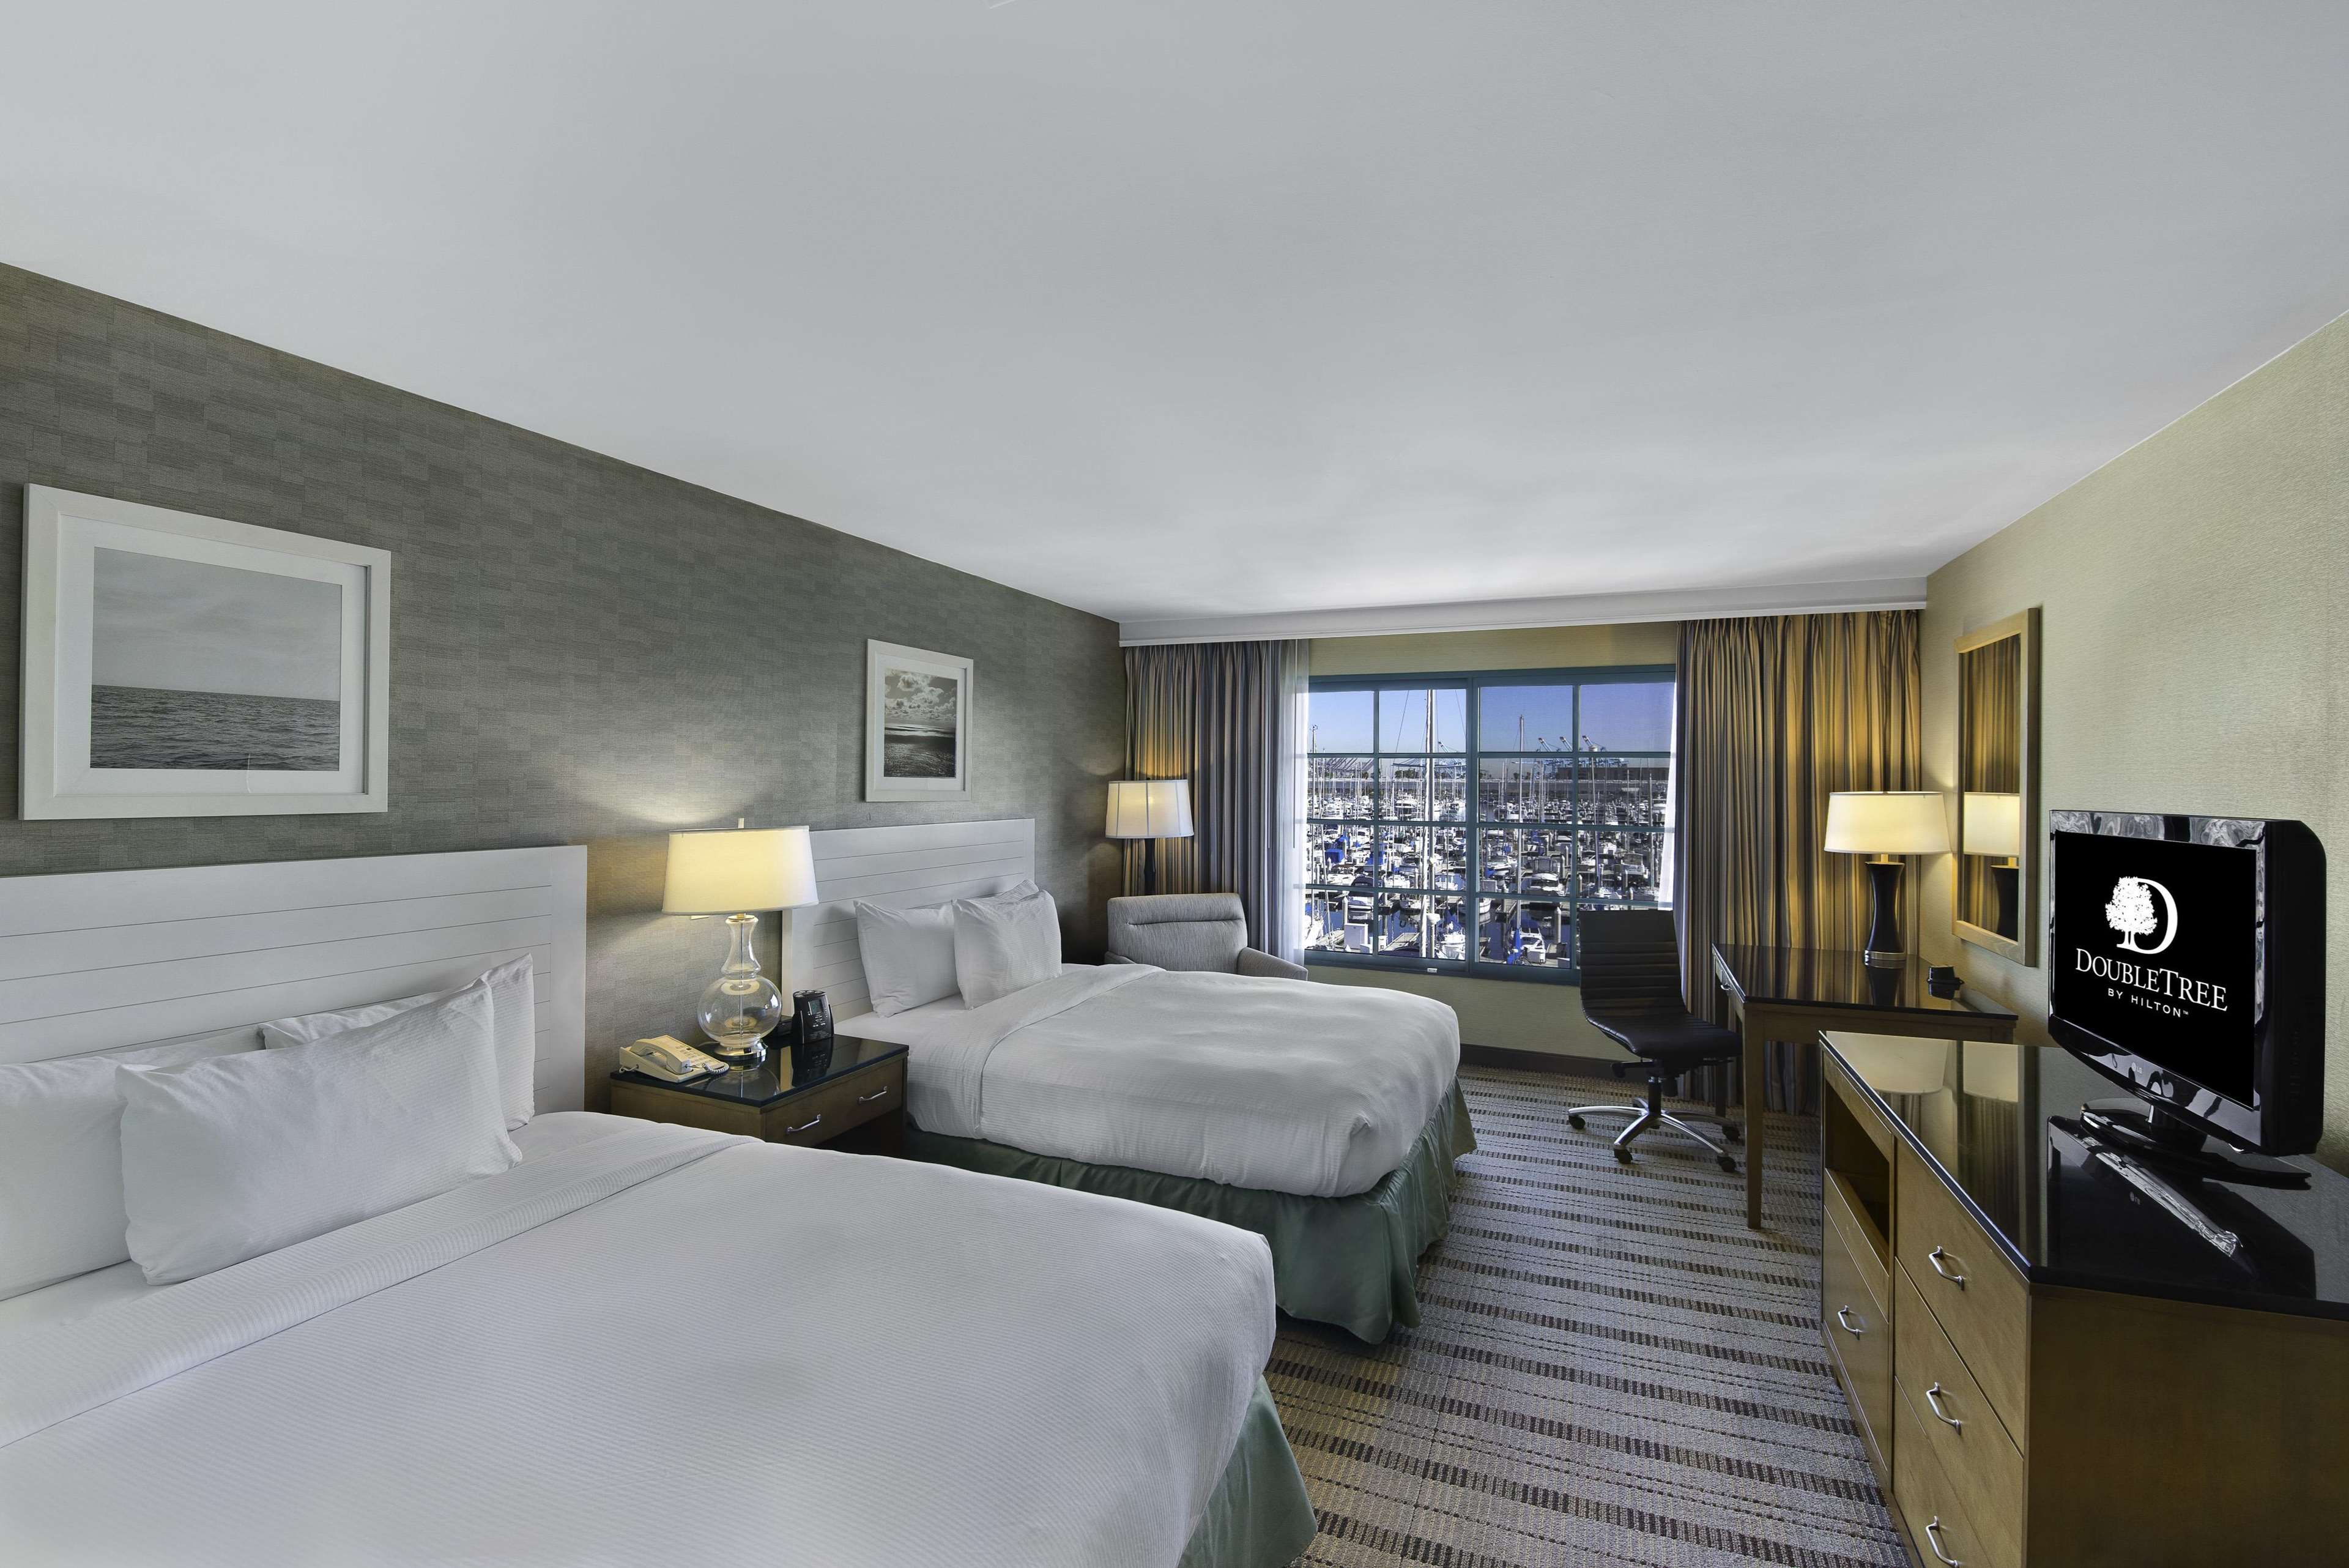 DoubleTree by Hilton Hotel San Pedro - Port of Los Angeles image 15